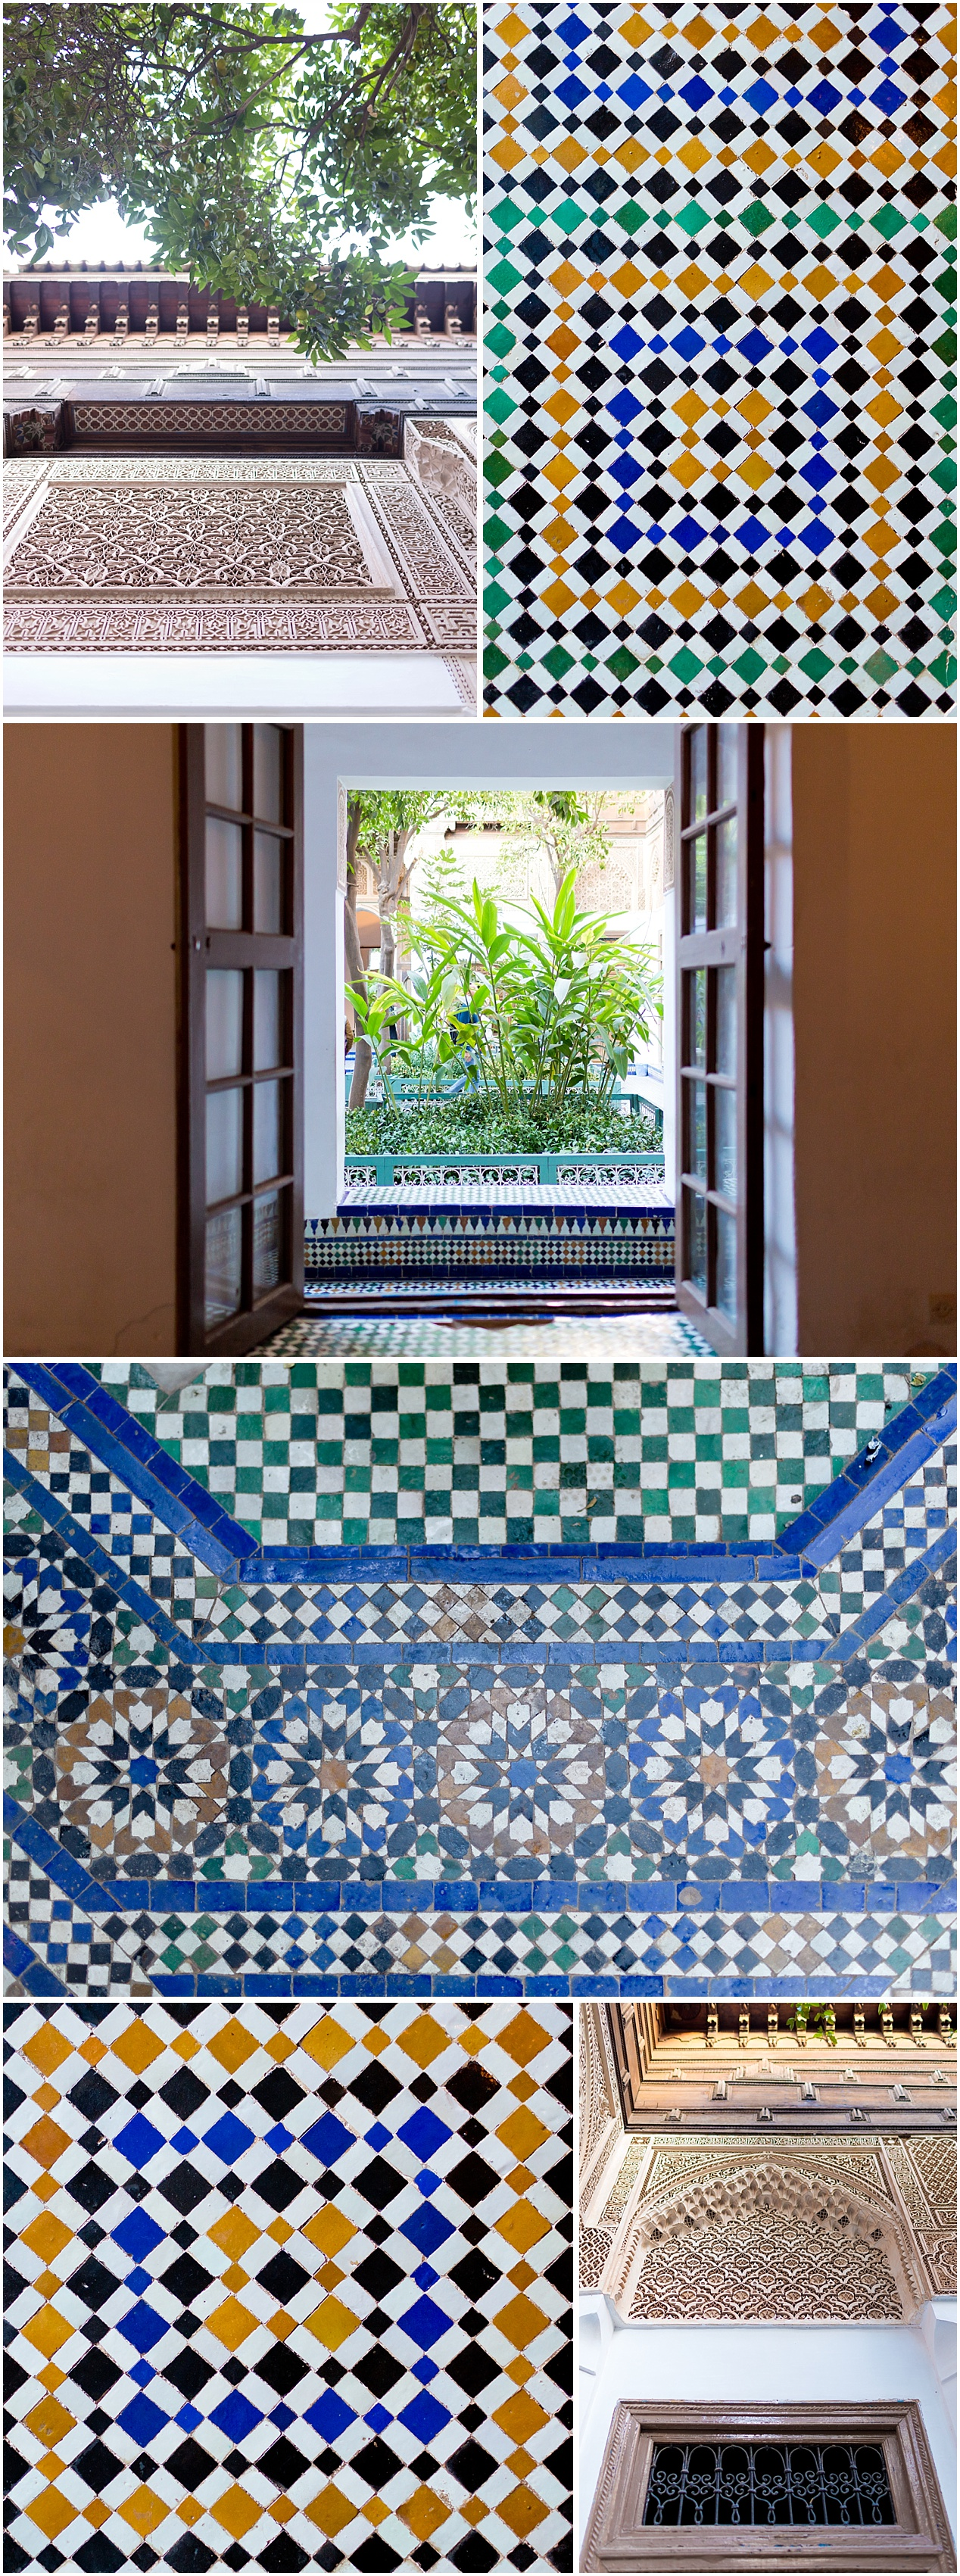 mosaic tile and stucco work in Marrakech, Morocco (Bahia Palace)